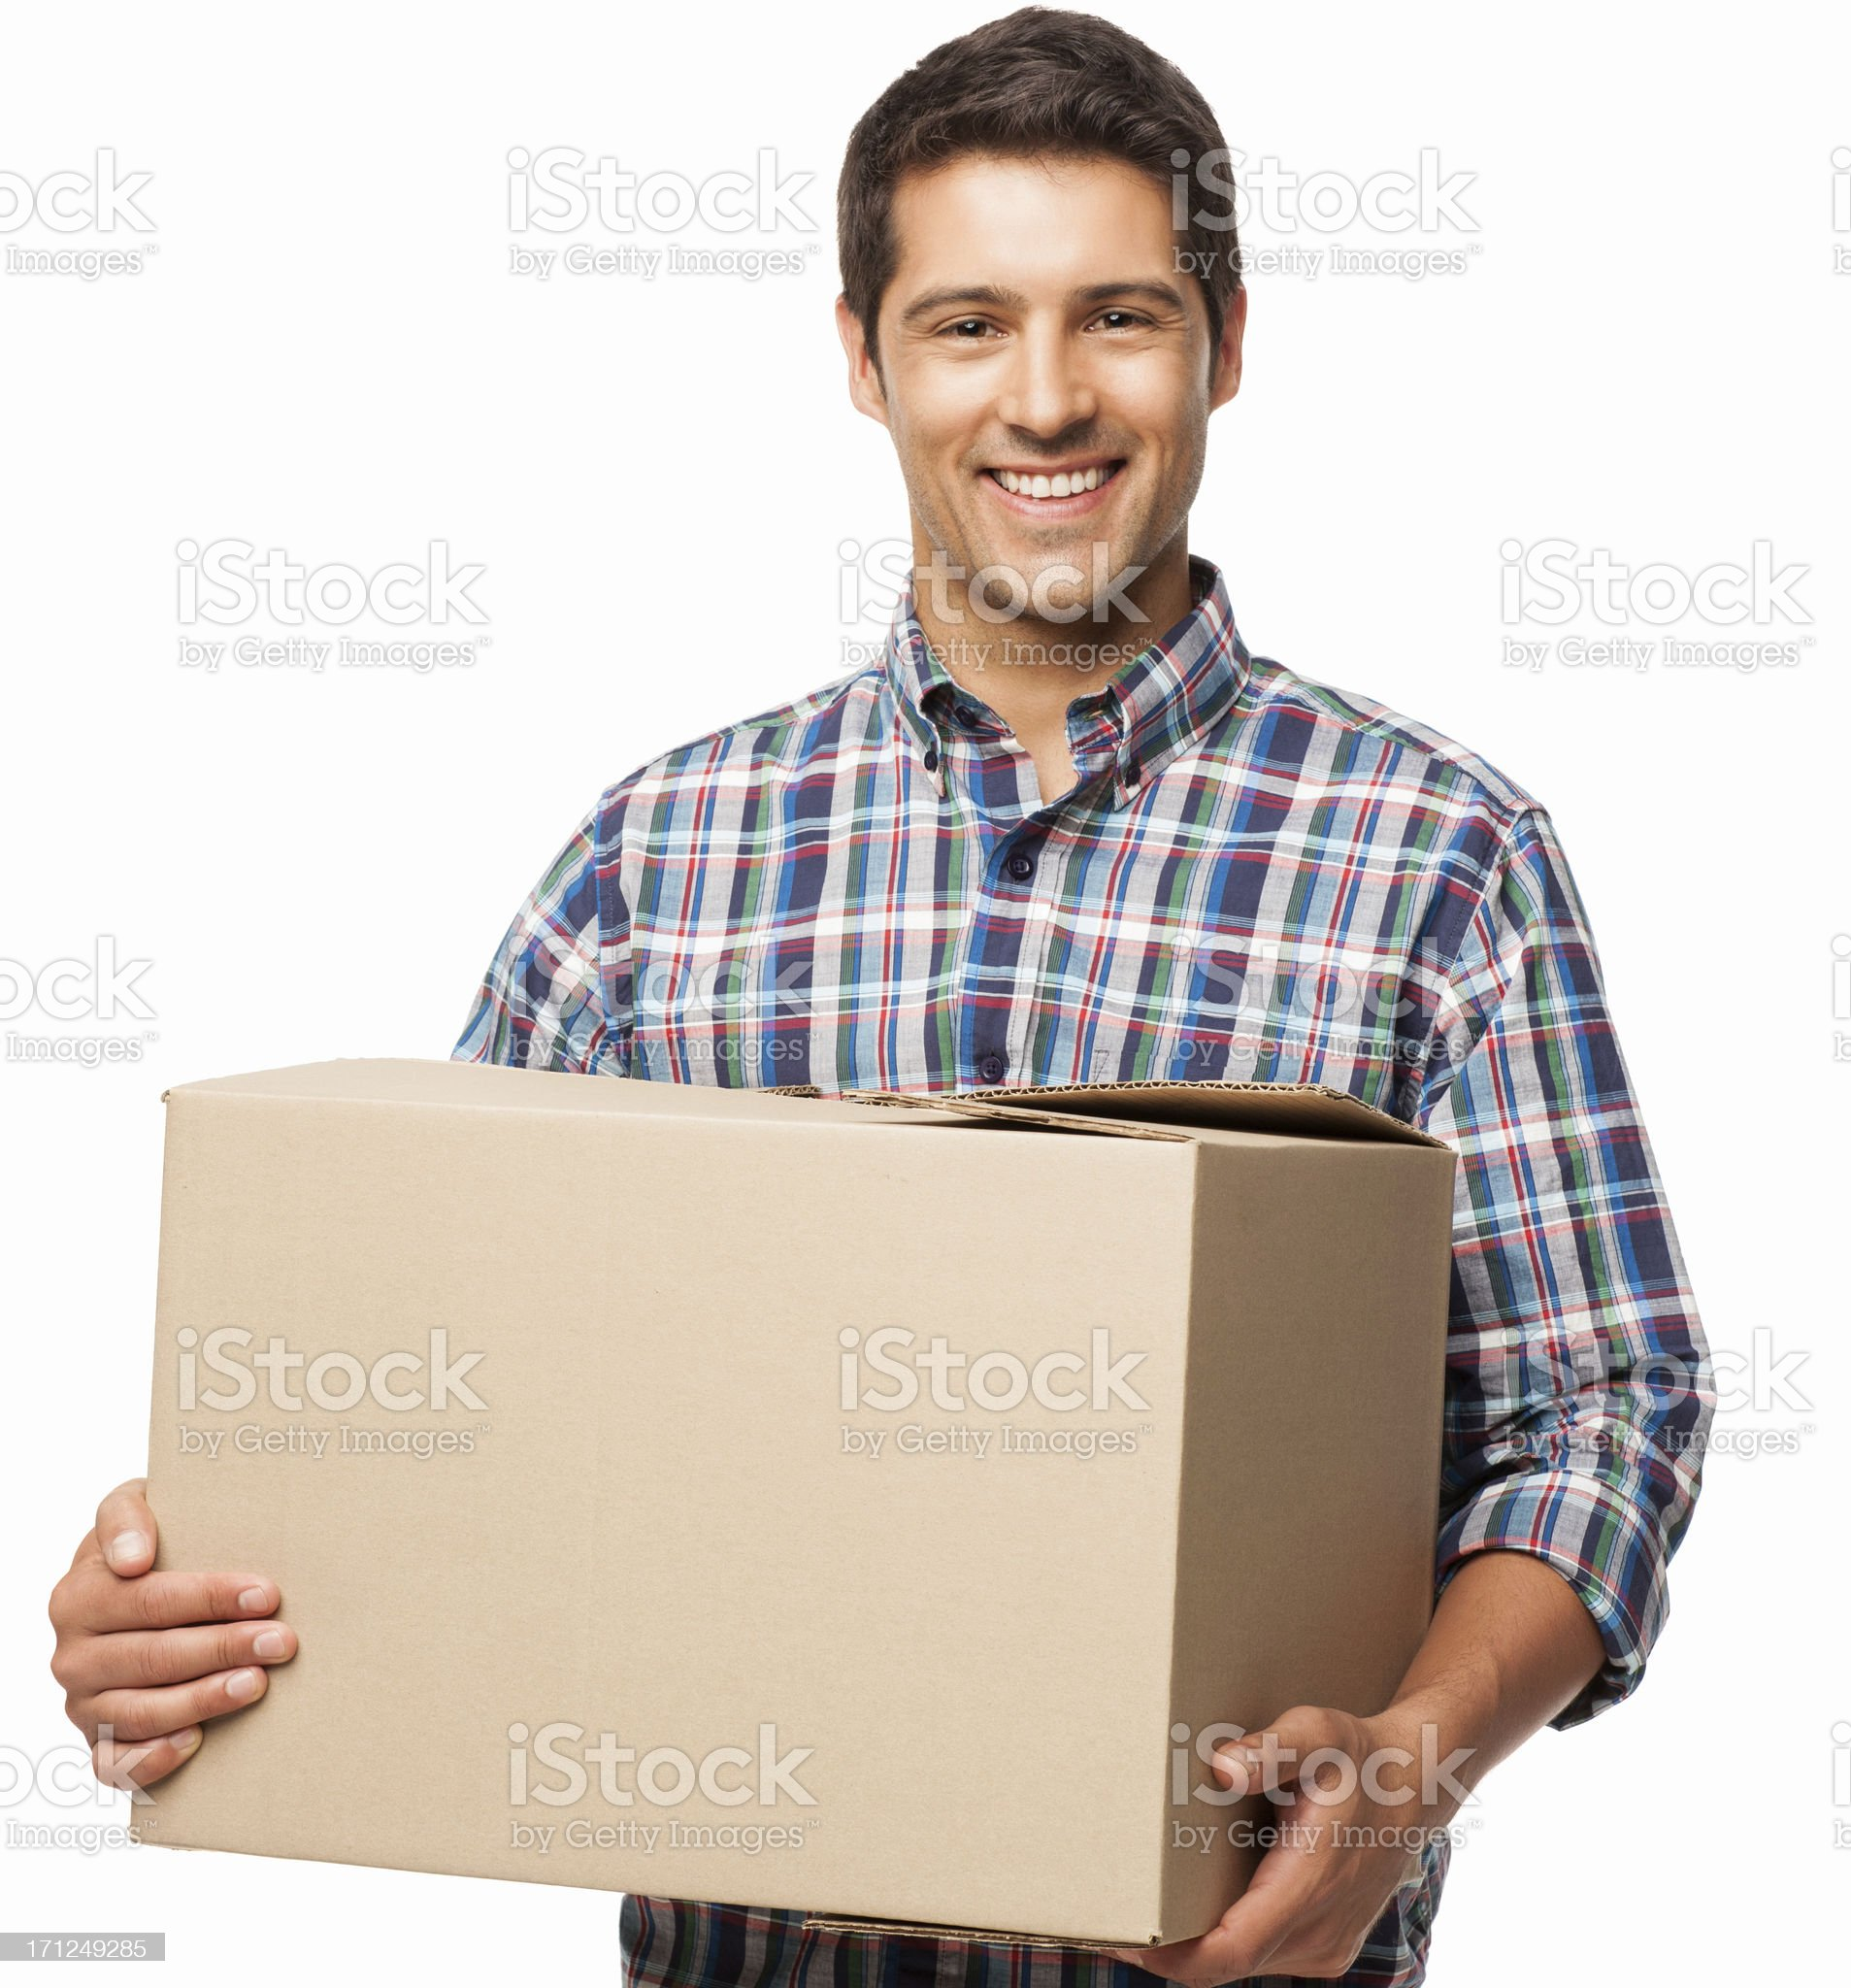 Young Man Carrying a Cardboard Box - Isolated royalty-free stock photo